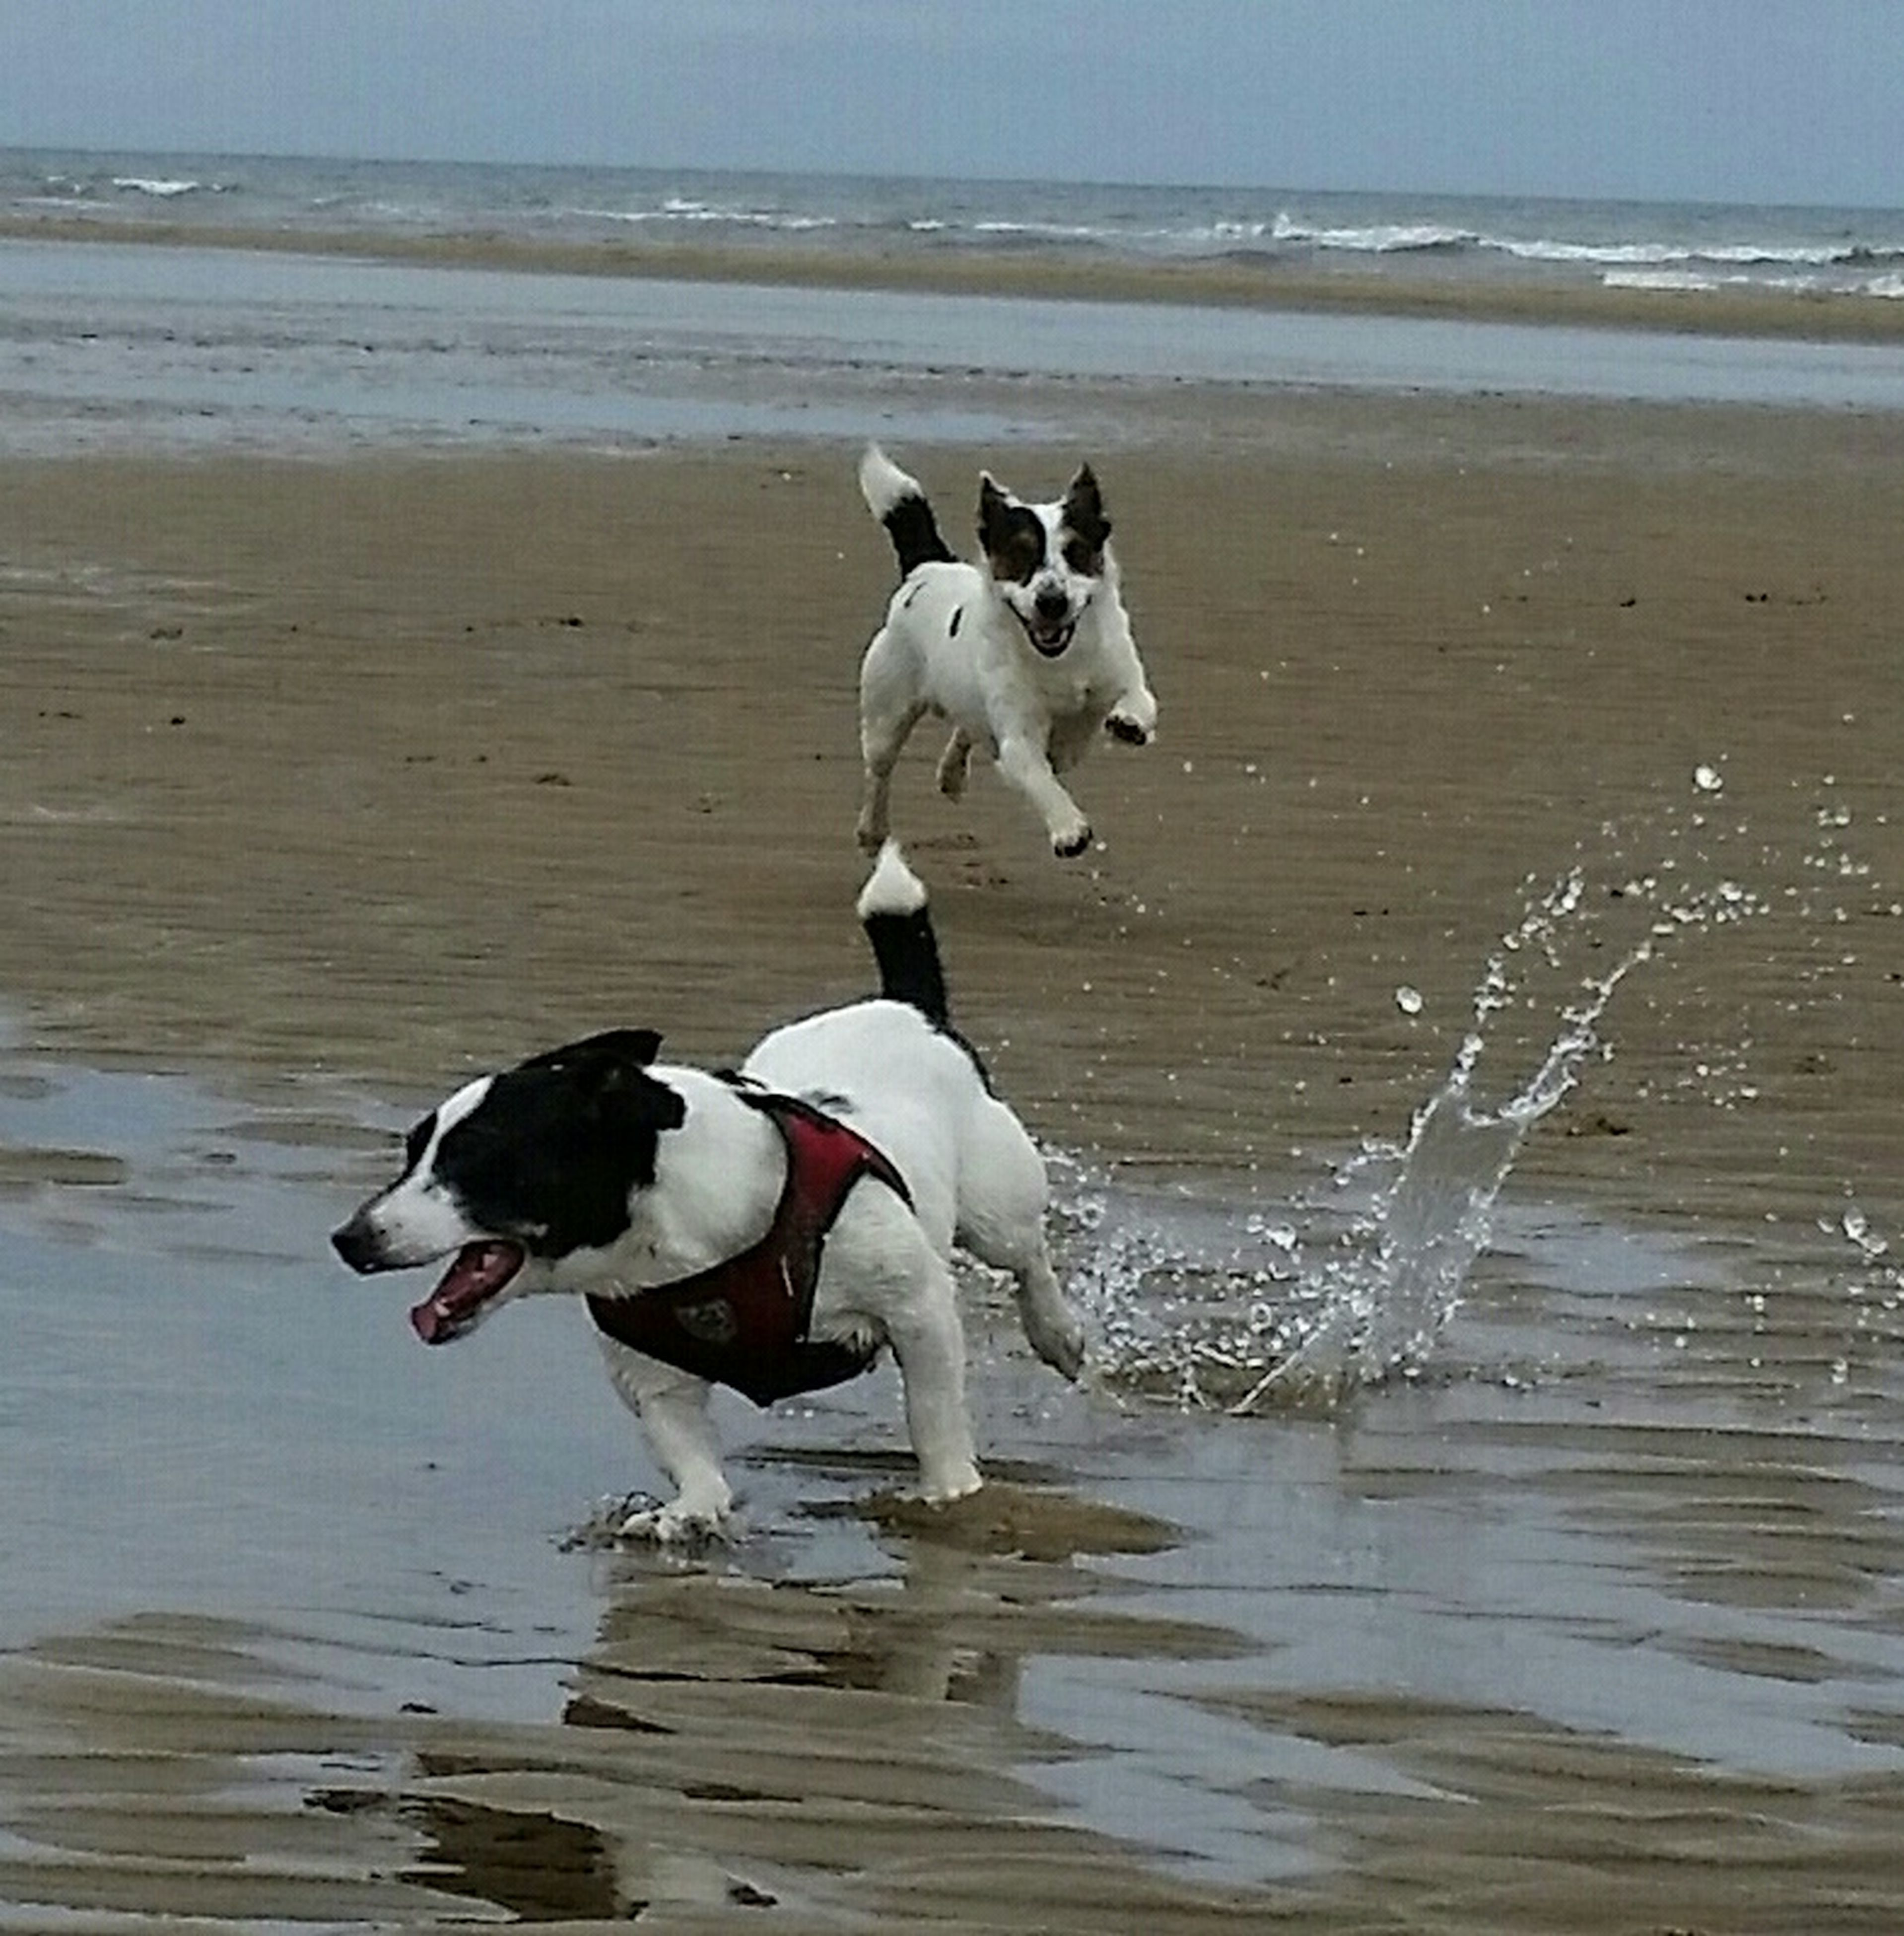 water, sea, beach, horizon over water, sand, shore, animal themes, wave, nature, full length, beauty in nature, vacations, tranquility, dog, bird, tranquil scene, domestic animals, scenics, idyllic, day